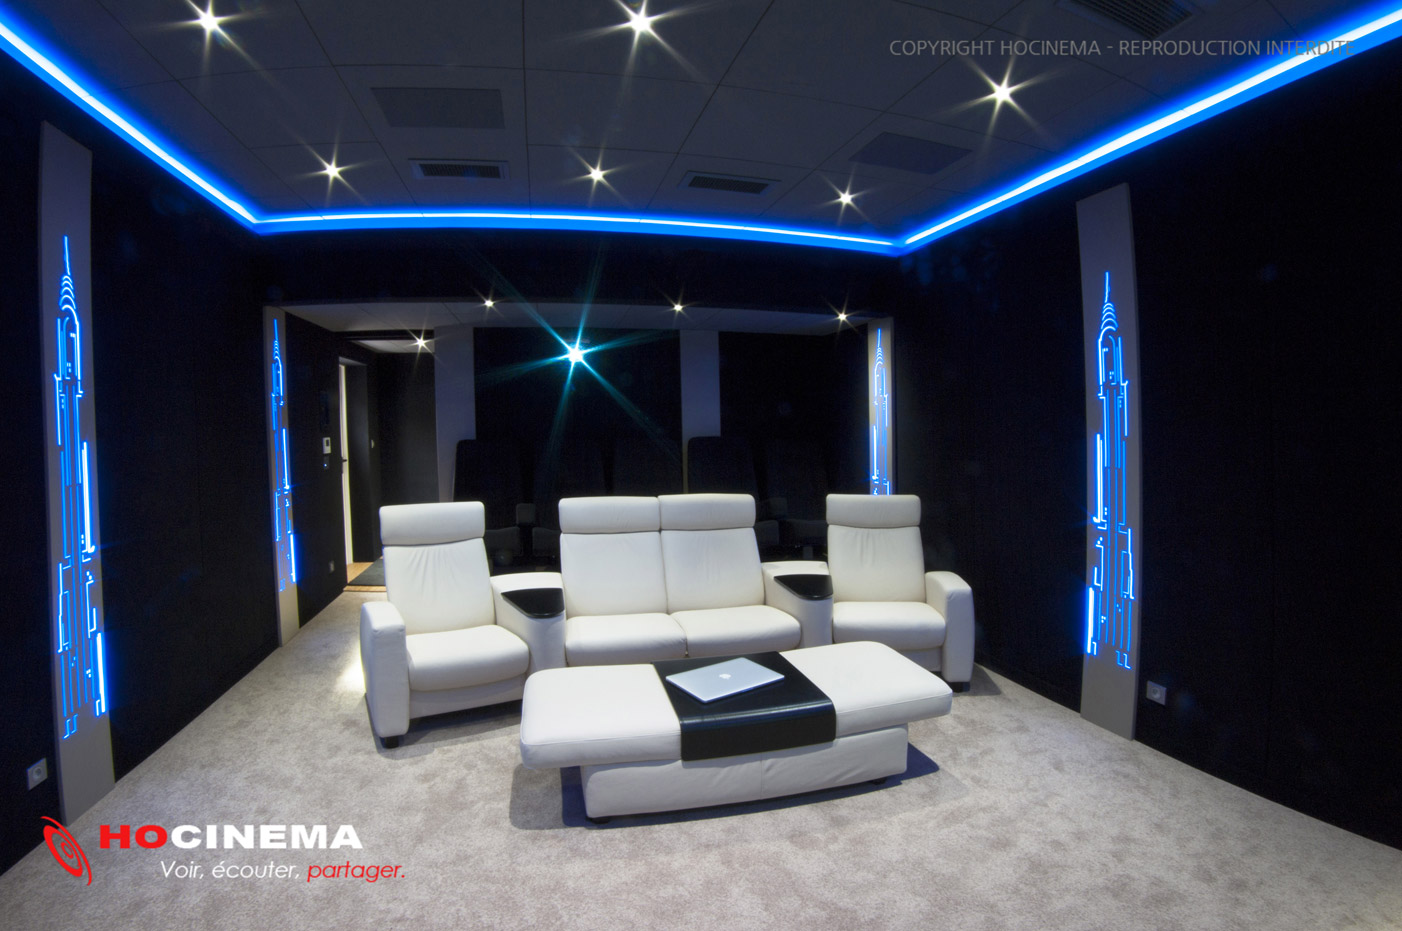 hocinema la salle de cin ma priv e pegasus en d tail. Black Bedroom Furniture Sets. Home Design Ideas